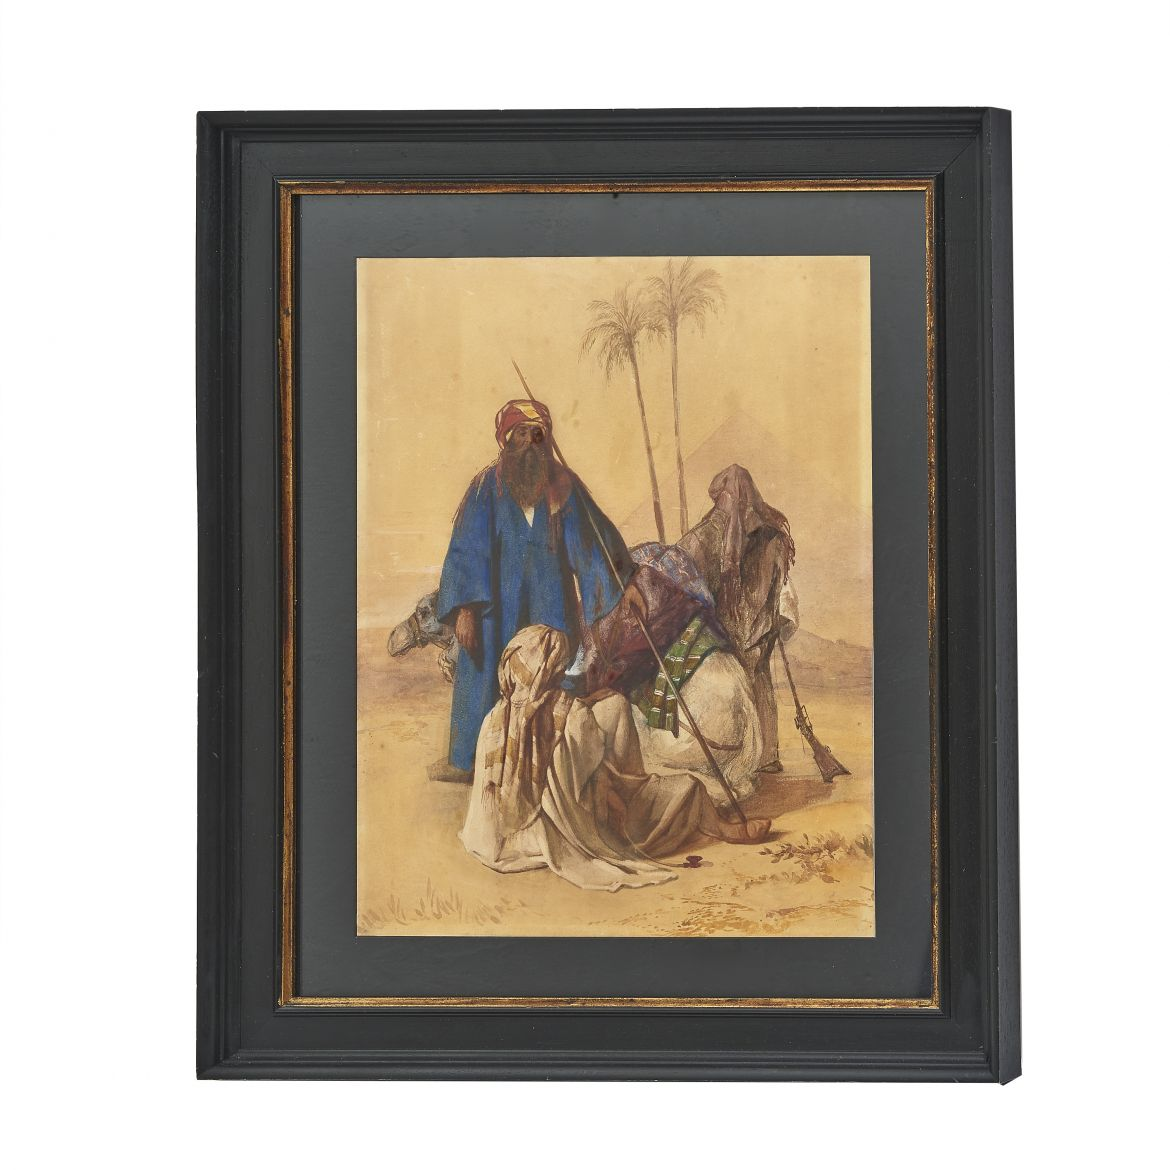 Orientalist Watercolour Of Men With Camel